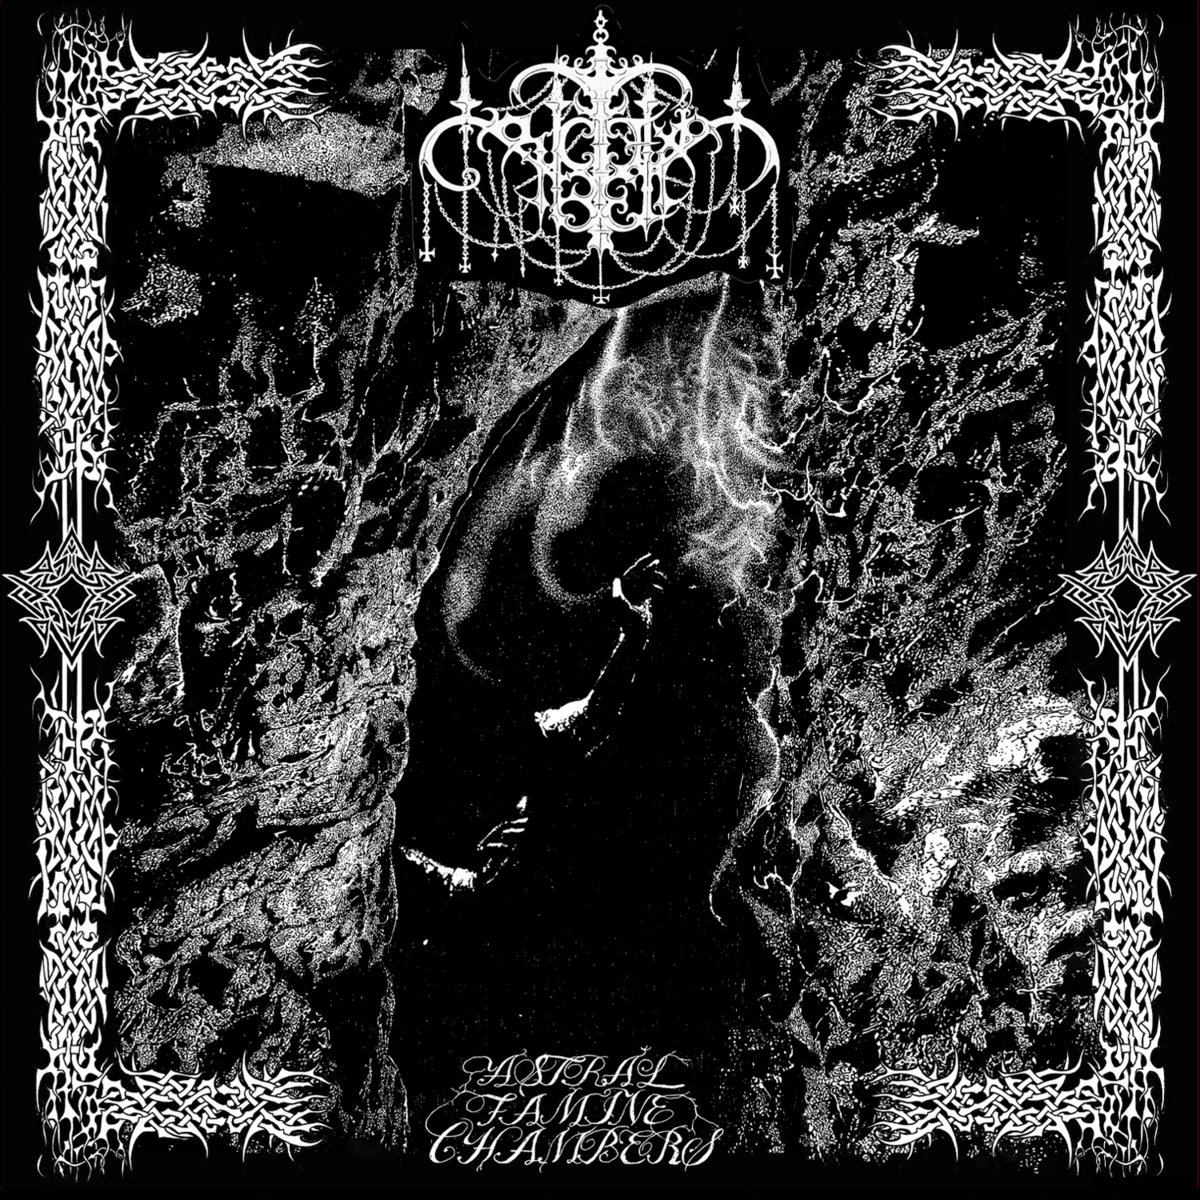 Crucifixion Bell - Astral Famine Chambers (2021)